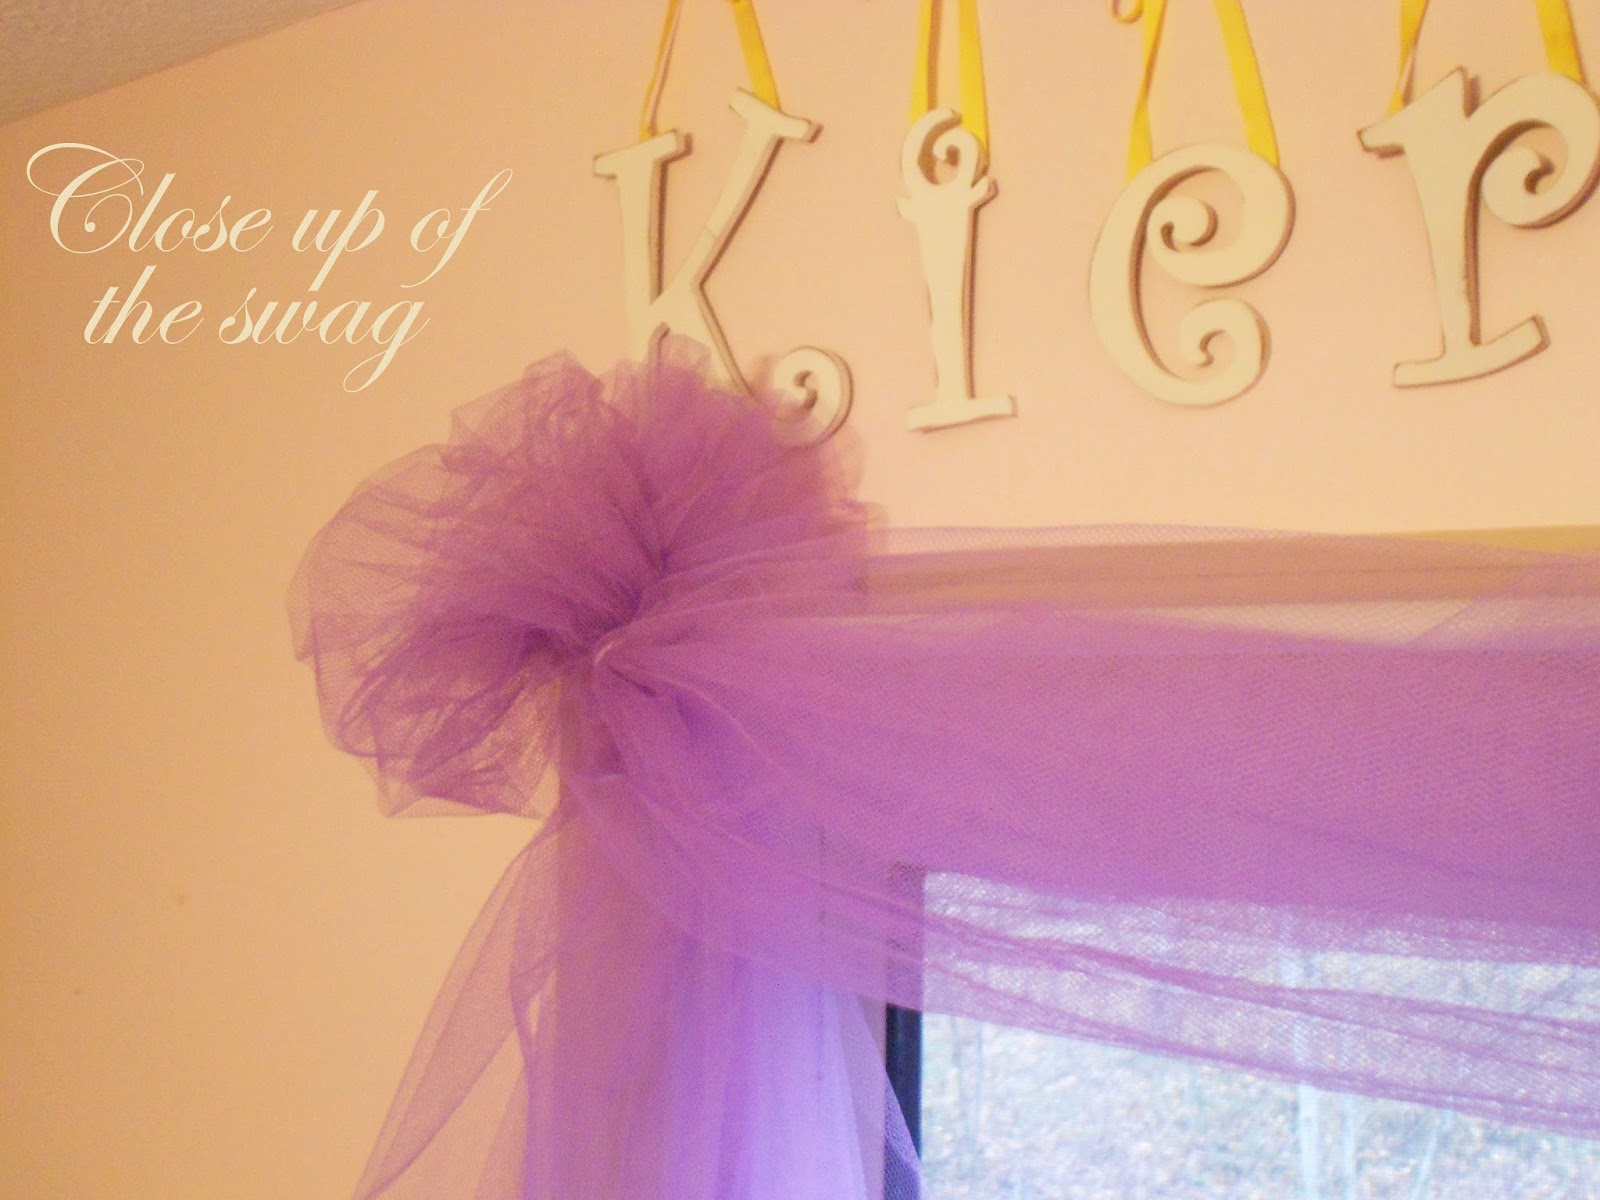 Diy Easy No Sew Tulle Swag Curtain Outnumbered 3 To 1